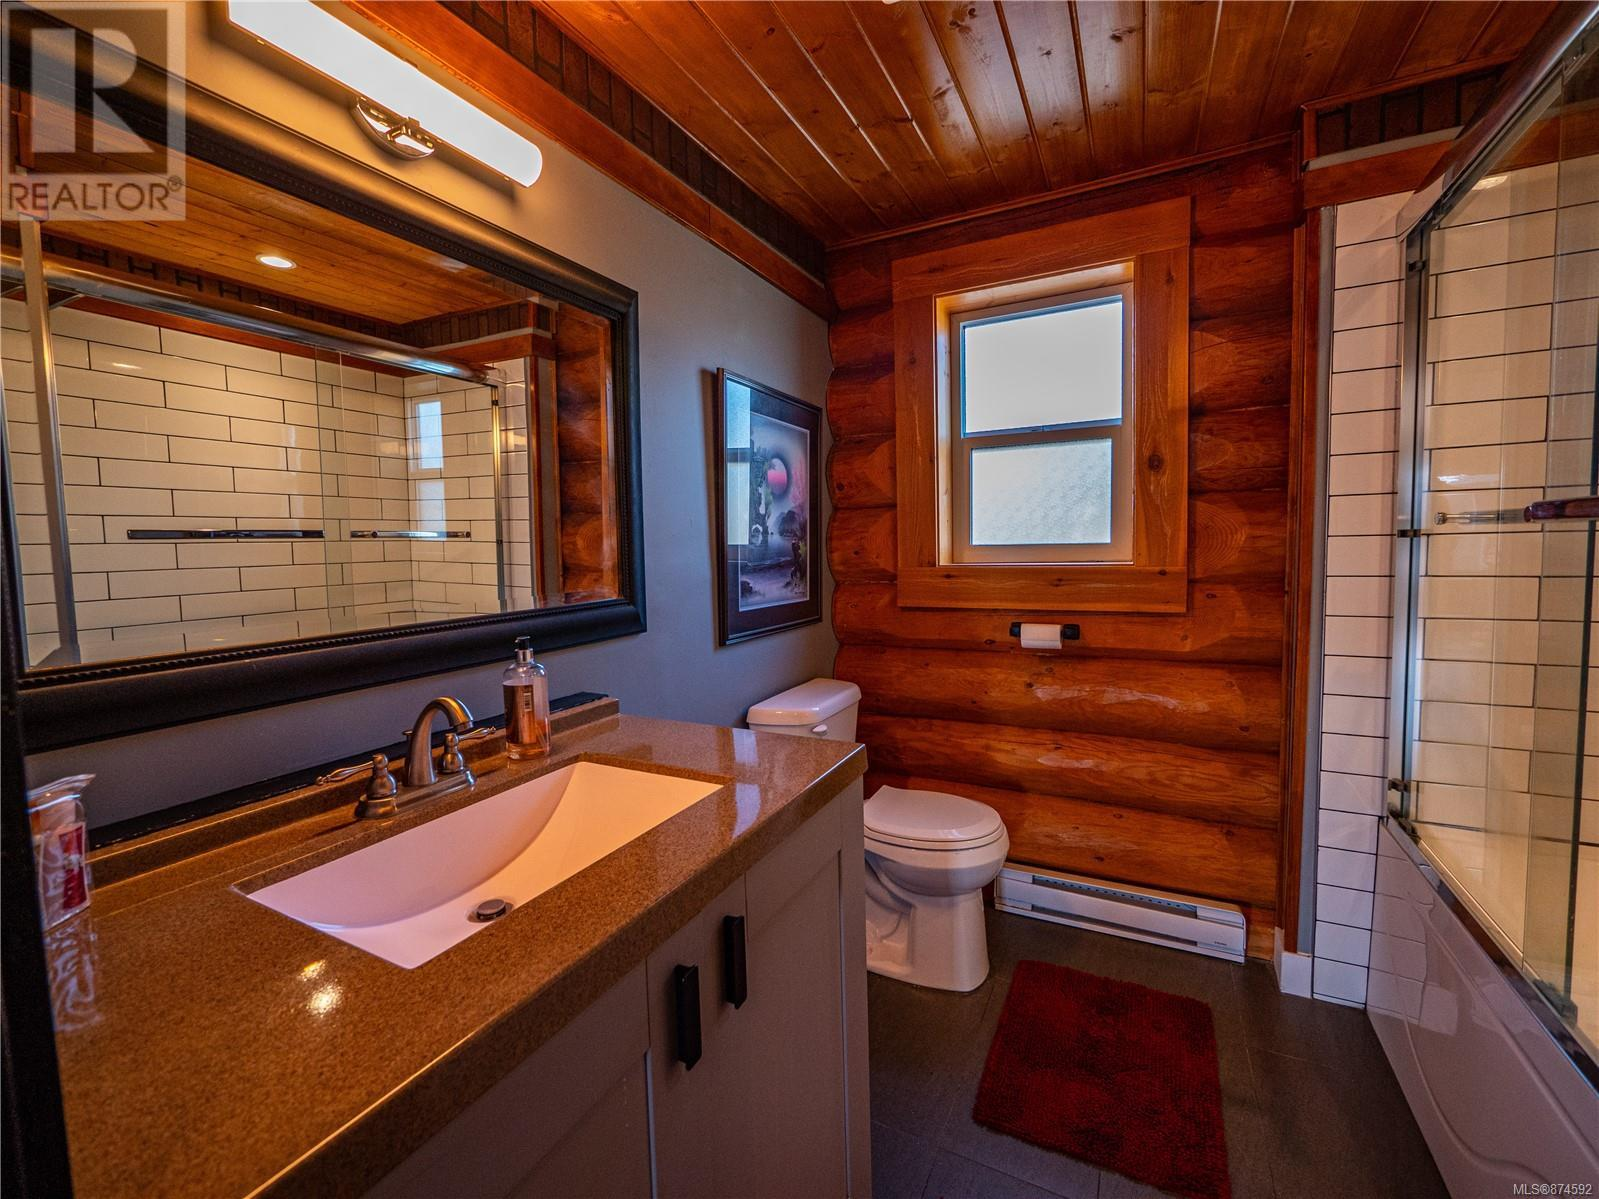 MLS® #874592 - Ucluelet House For sale Image #5